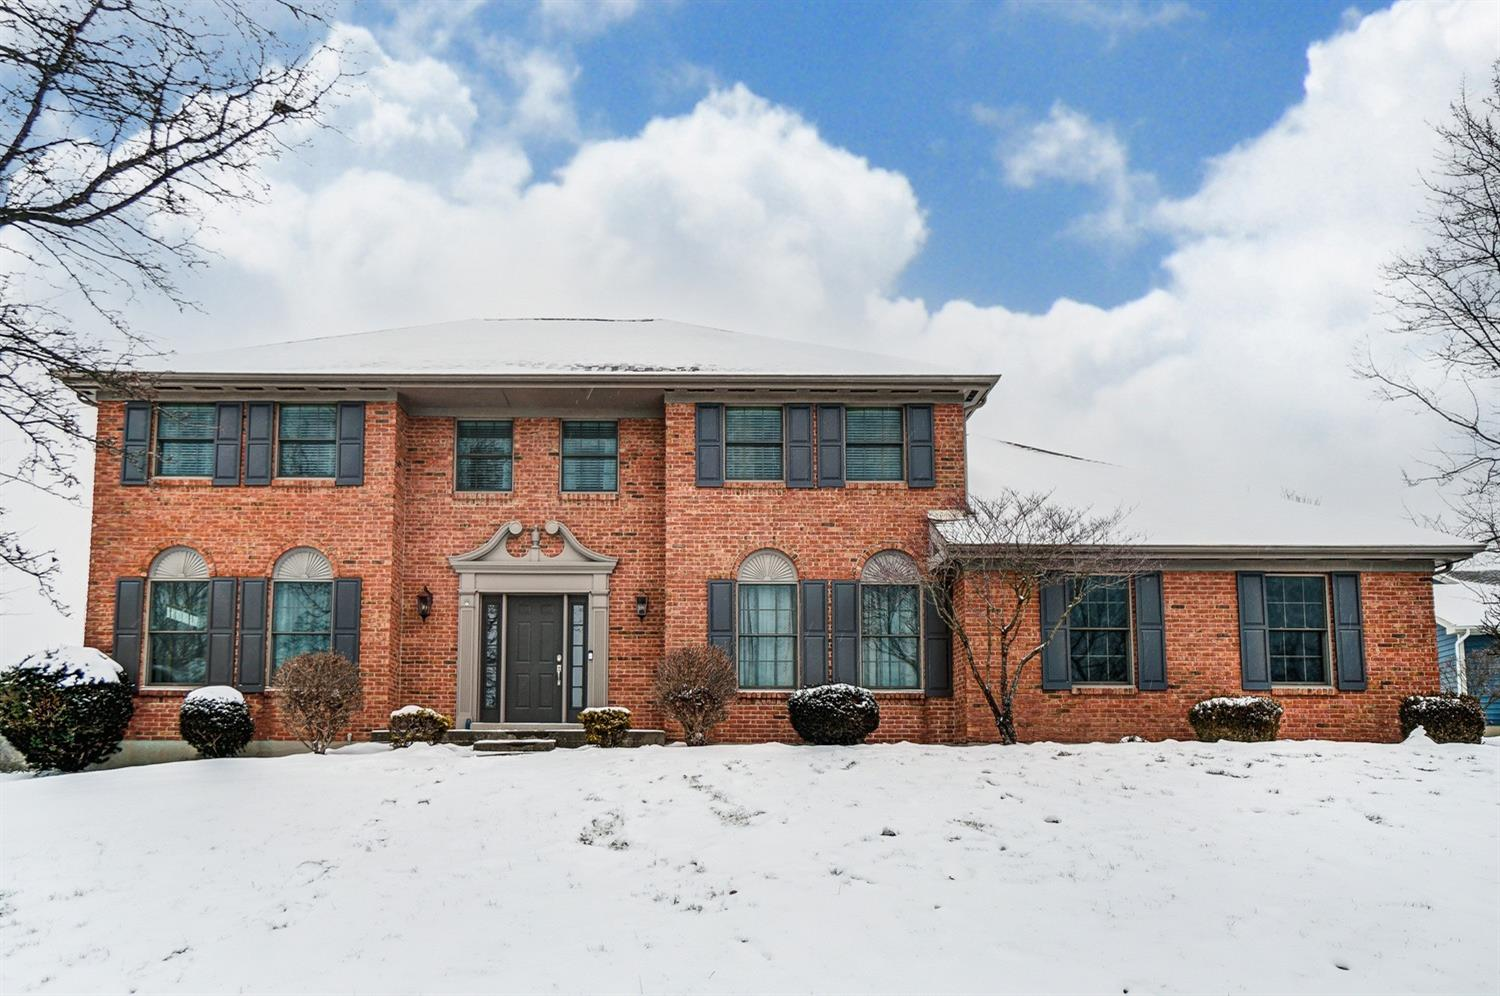 Great Open floor plan & tiered deck with huge fenced yard make it perfect for entertaining. 2 story brick over 3,300 finished sq Ft w/Fin LL! Large master suite includes walk-in closet, sitting room/study & beautifully updated en-suite bath. Updated kitchen w/SS appliances, planning desk, granite countertops. Mudroom & half bath just remodeled!  Near shopping & recreation. Reviewing all offers Sun2/21 @8pm-seller res rt to accept at any time once Active.